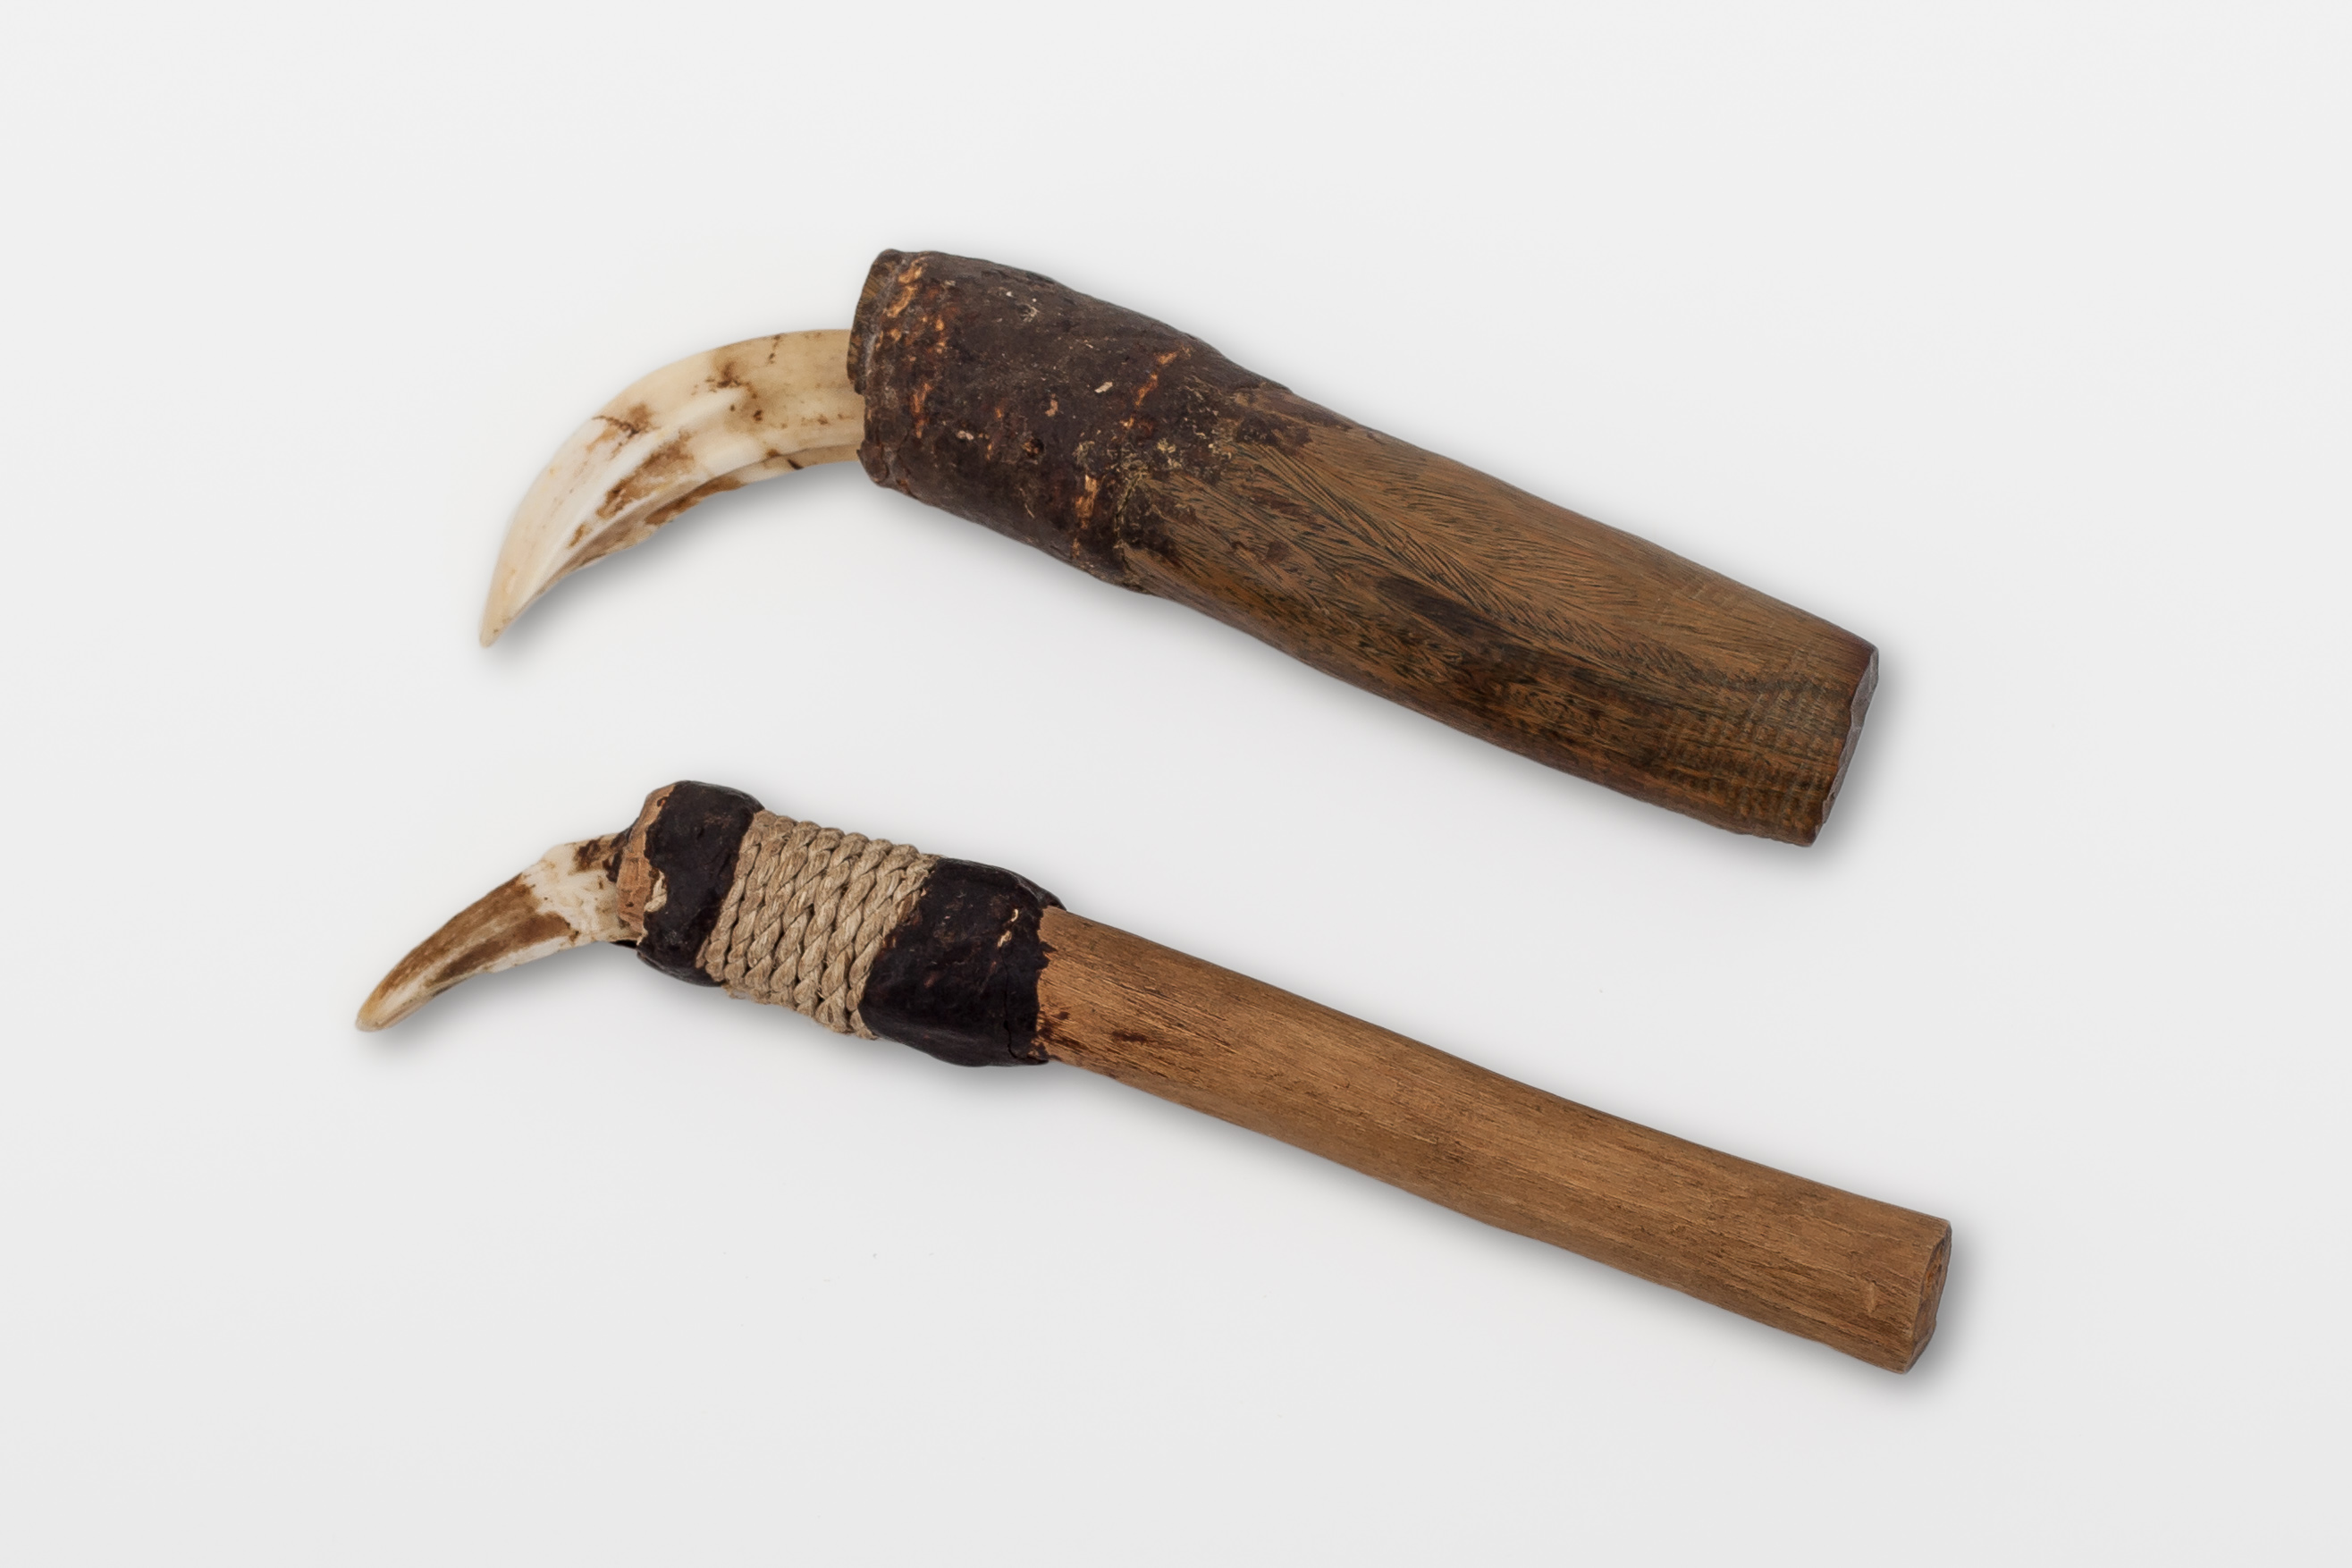 Plane for scraping wood, made from the tooth of a wild pig.